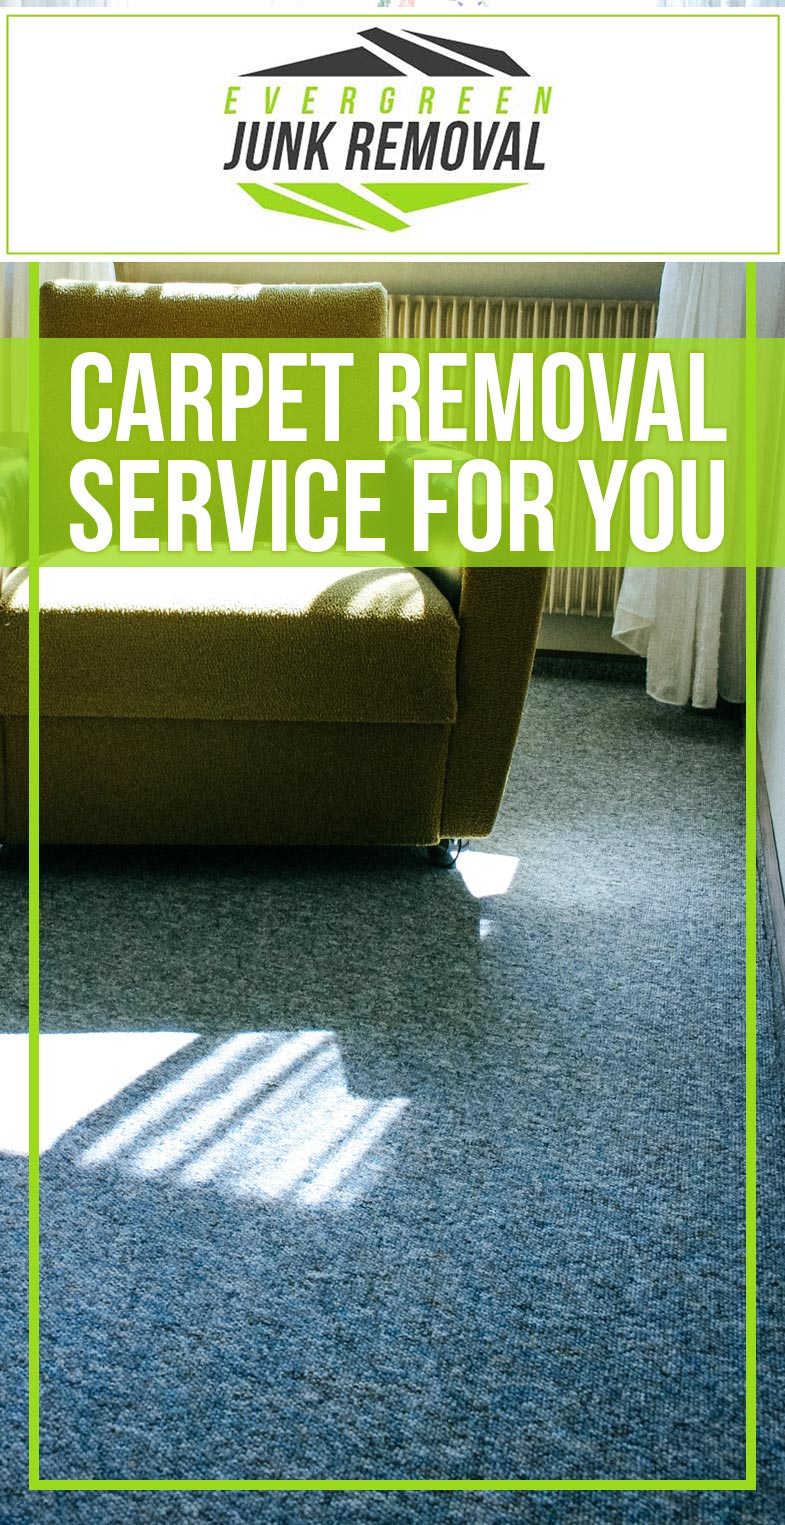 Carpet Removal Service